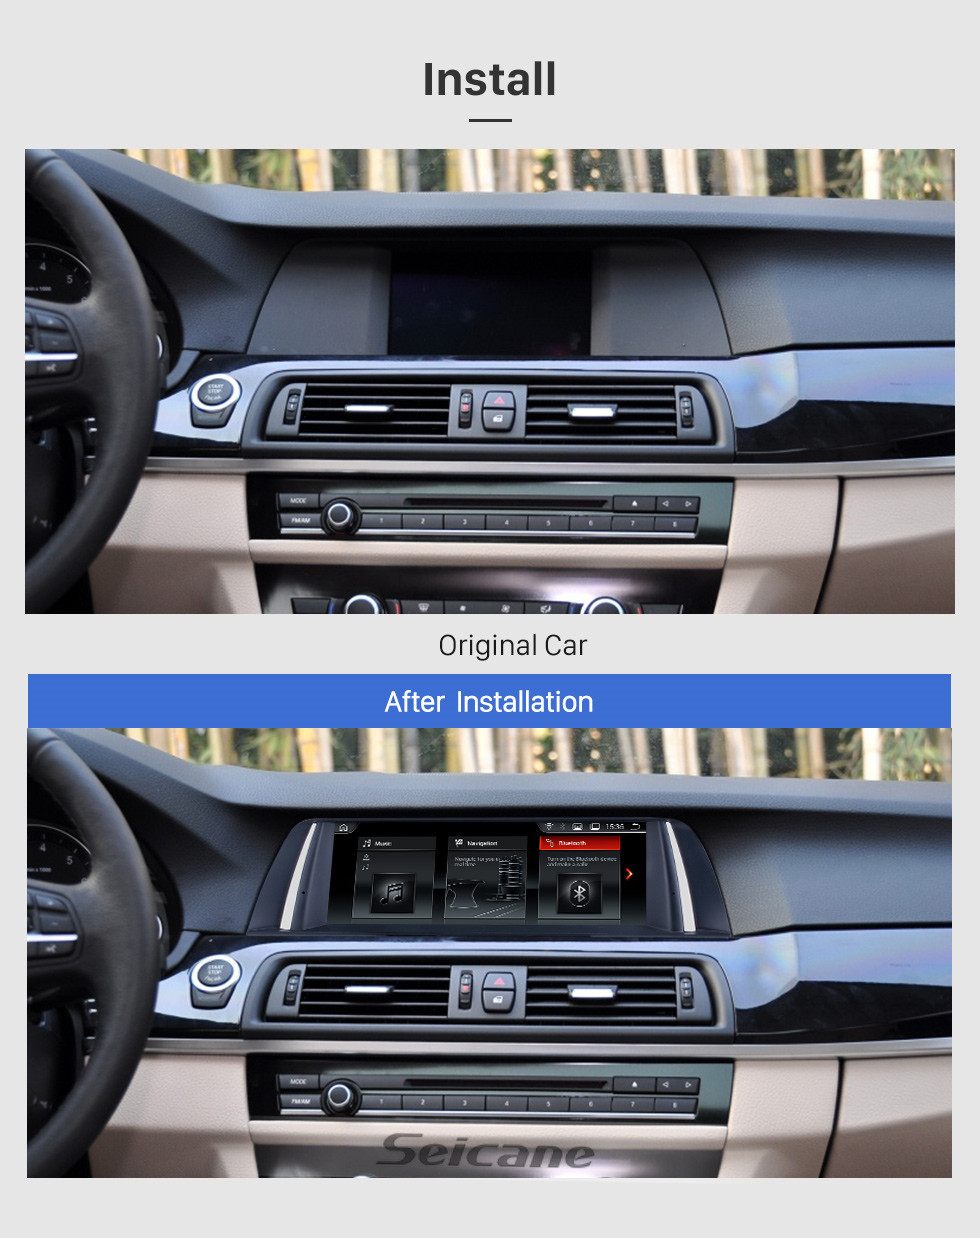 Seicane 10.25 Inch HD Touchscreen Android 8.1 2011 2012 BMW 5 Series F10/F11 CIC Car Stereo Radio Head Unit GPS Navigation Bluetooth Phone MP3 Support Steering Wheel Control WIFI Backup Camera